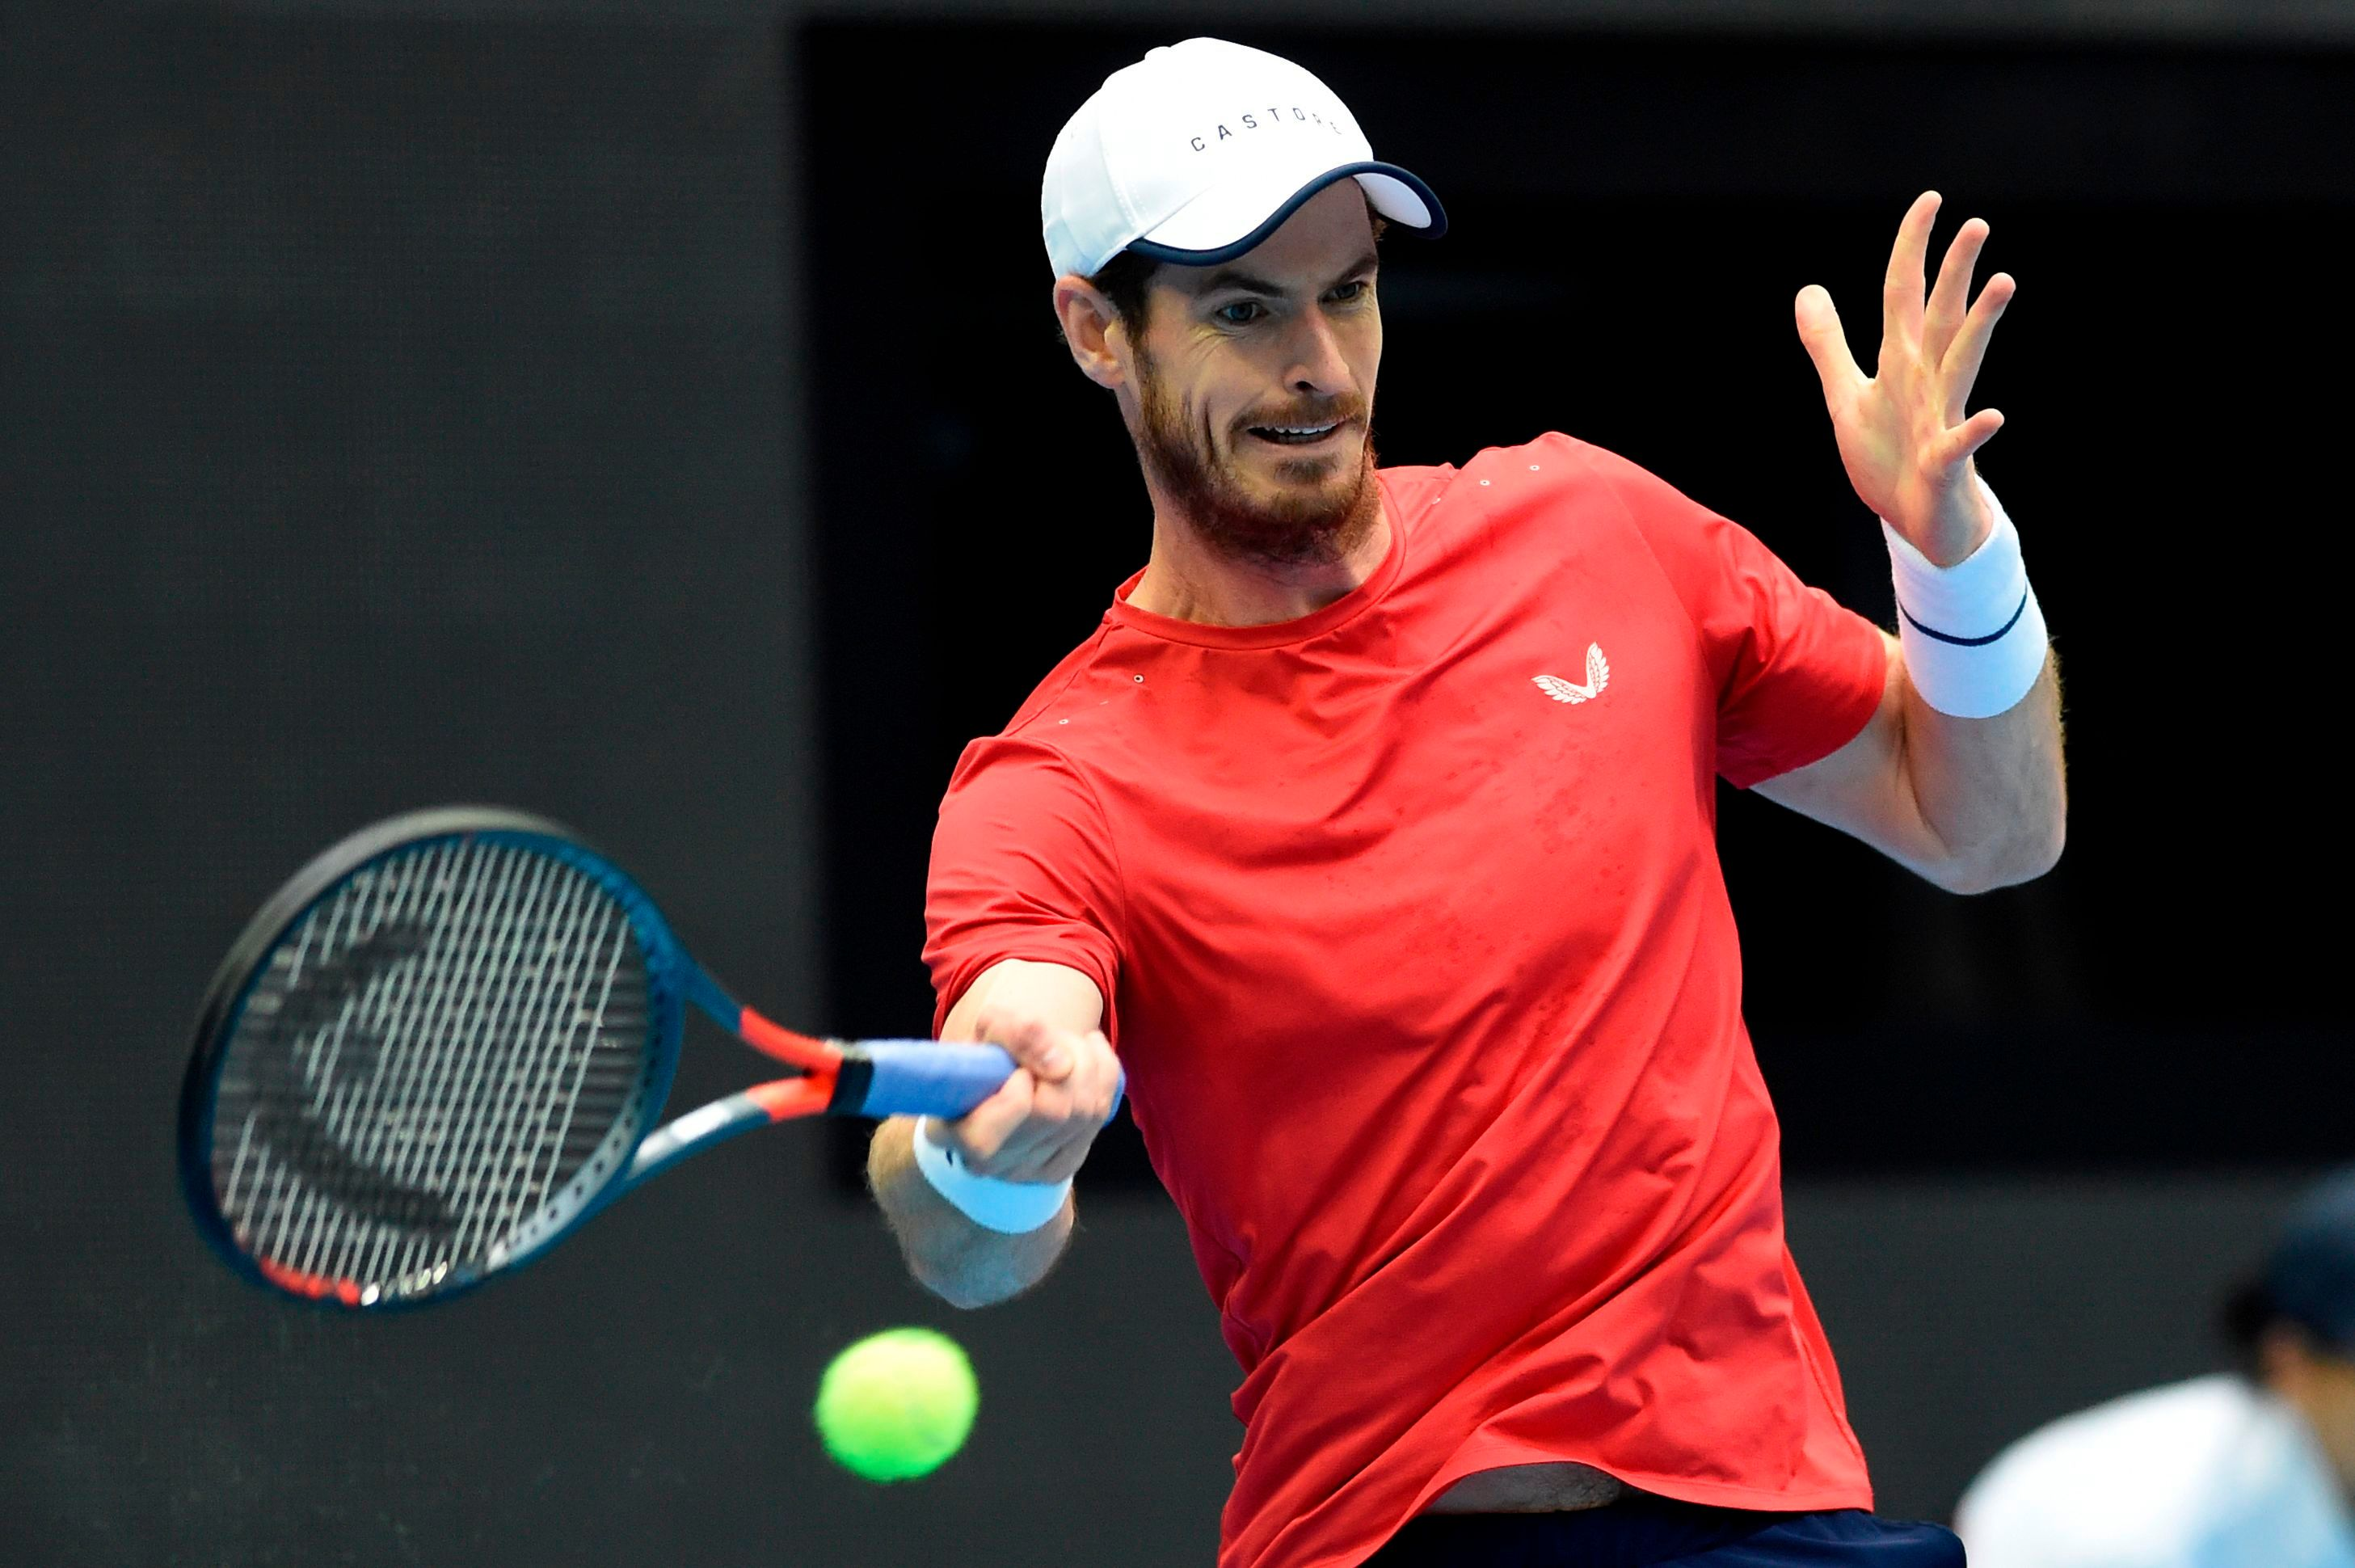 Murray has already made a successful return to Masters level tennis